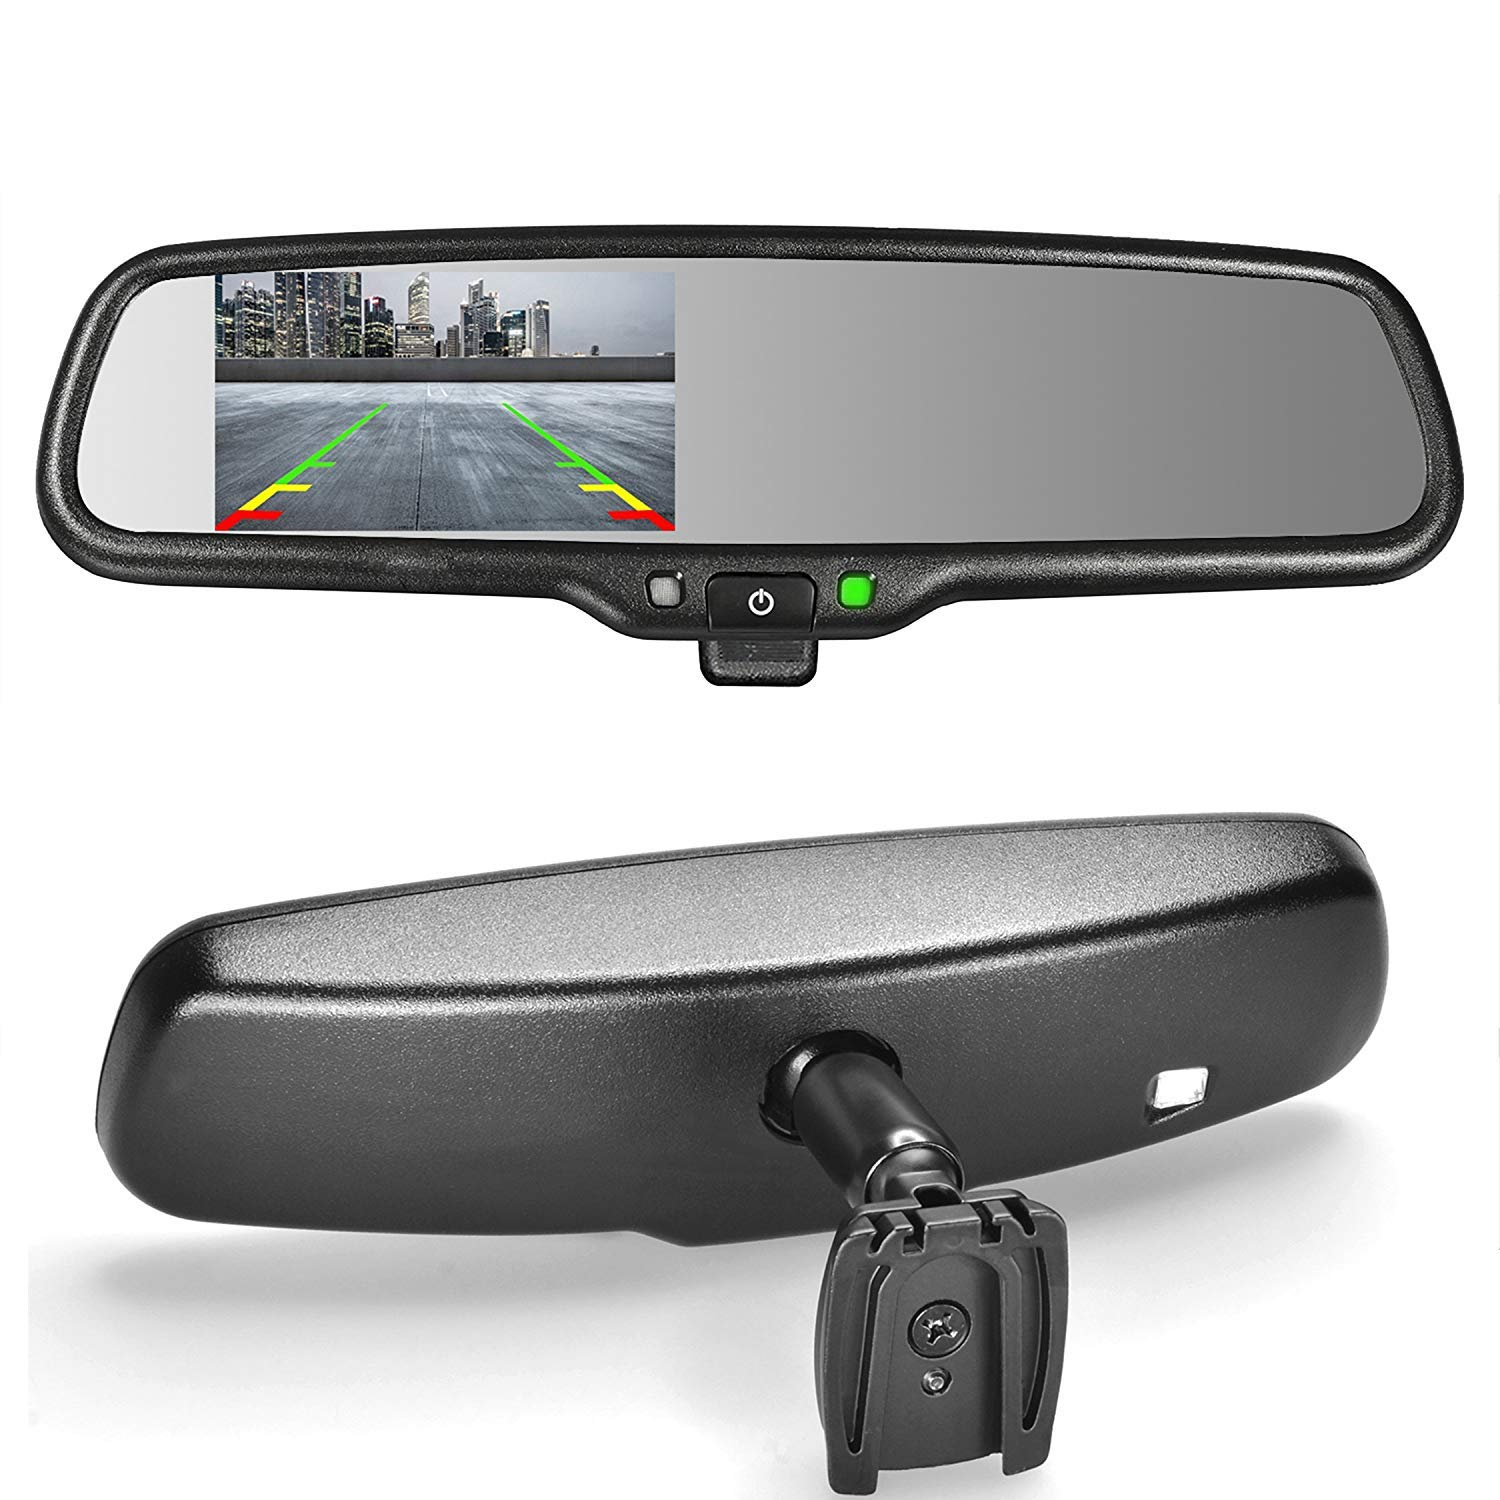 Master Tailgaters MR-43-E2M OEM Rear View Mirror with 4.3' Auto Adjusting Brightness LCD Plus Manual Dimming-Universal Fit MDDNR